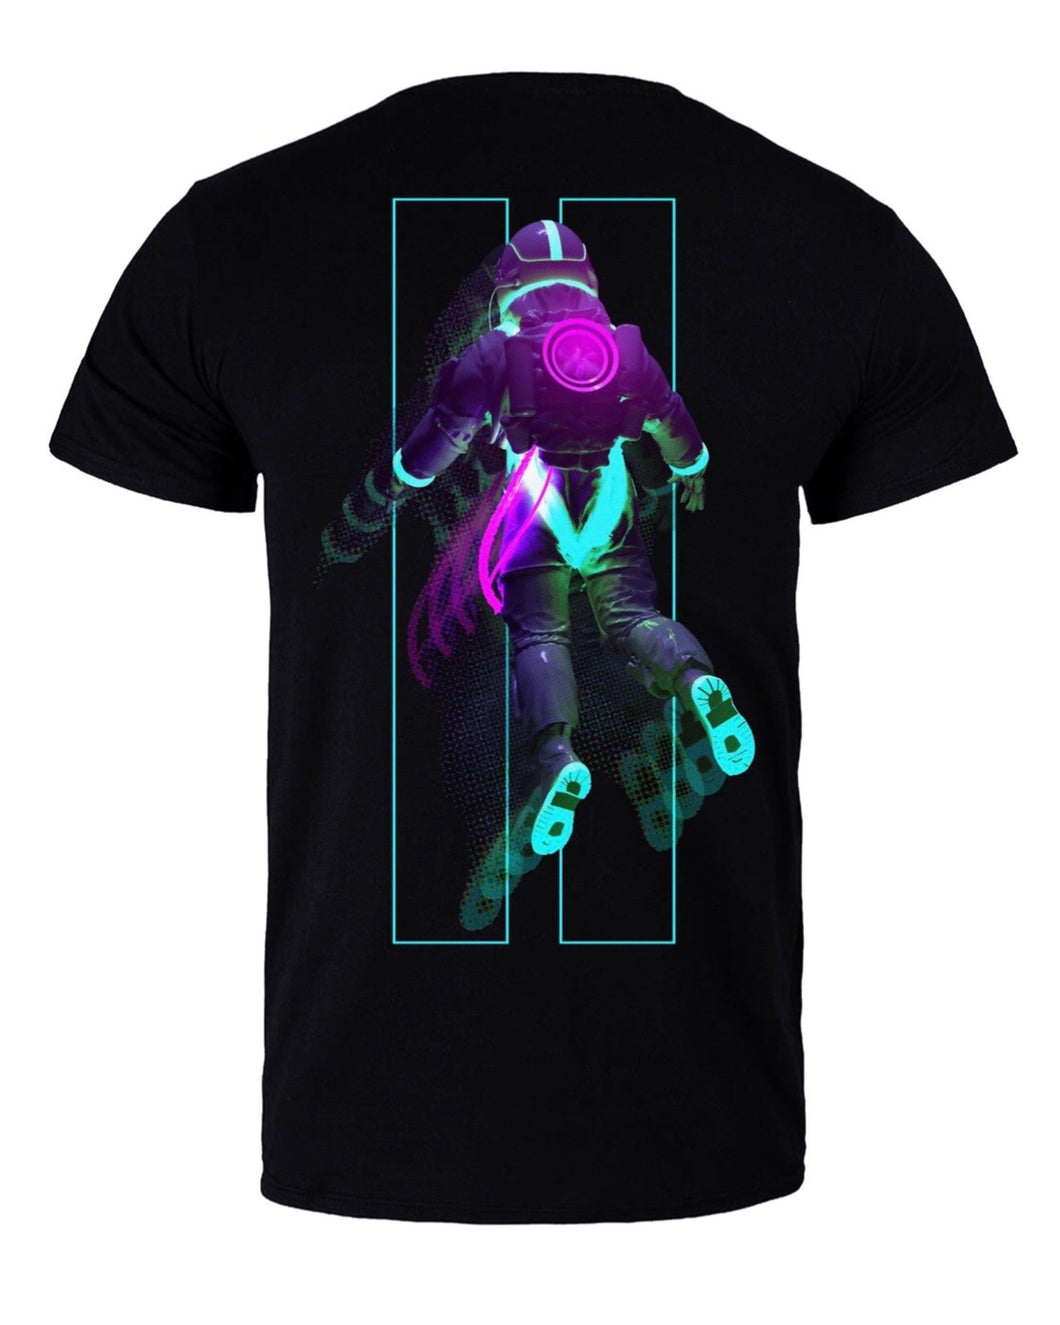 Astronaut Rebirth II Graphic T-Shirt